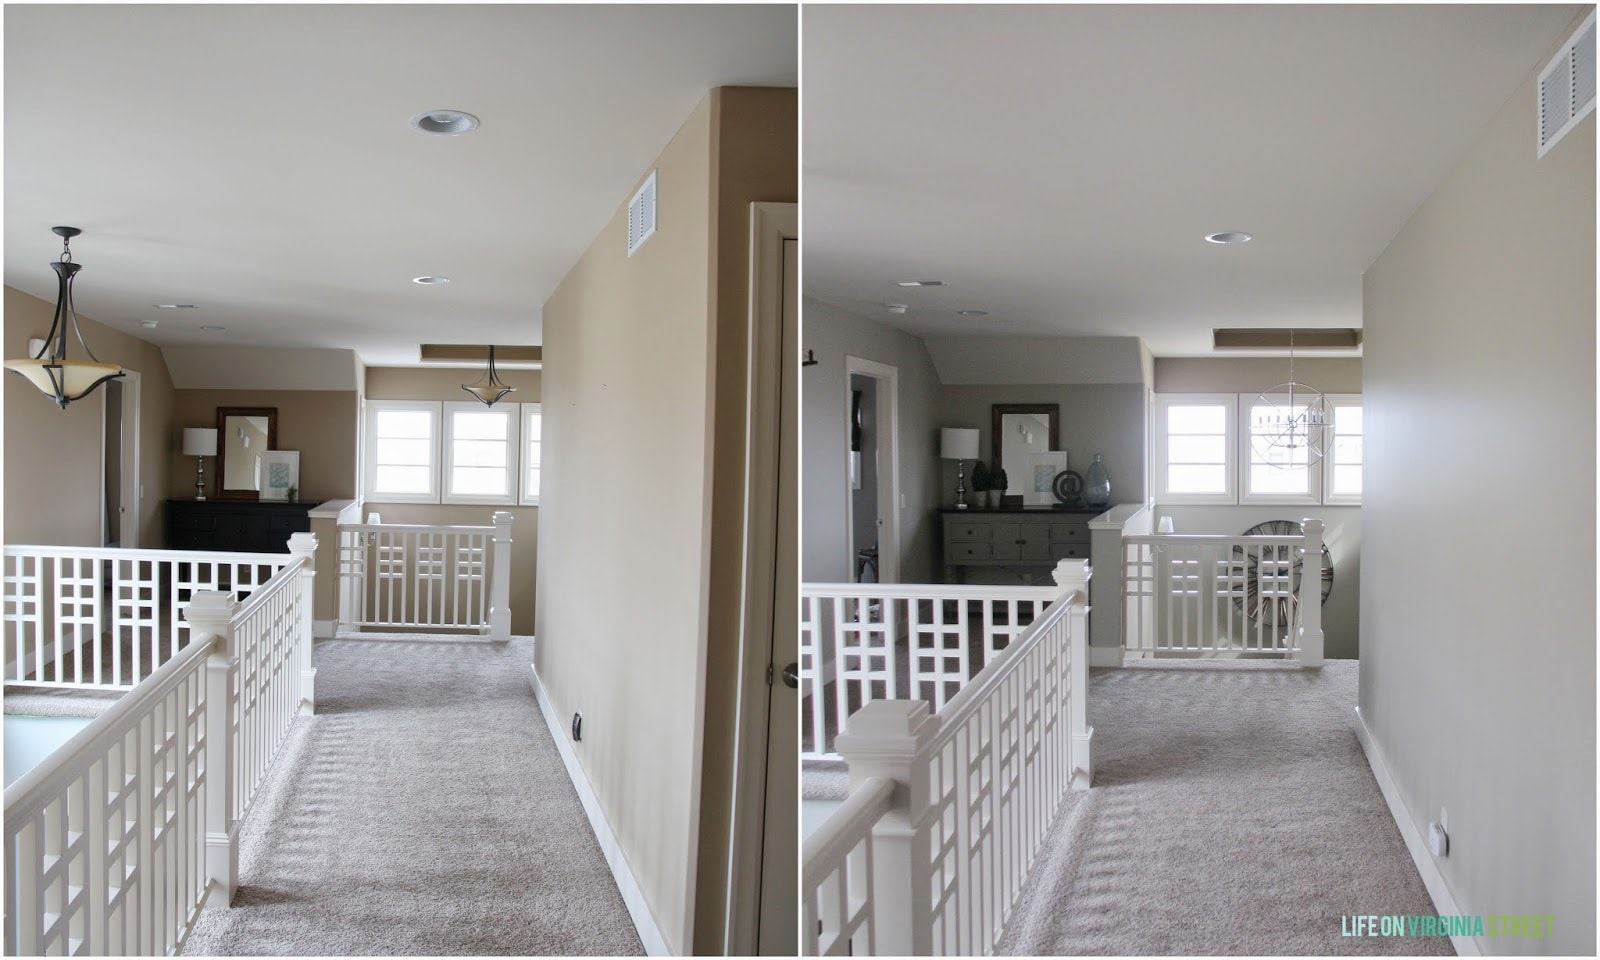 13 Best Behr Castle Path Images On Pinterest: Weekend Painting In The Upstairs Hallway